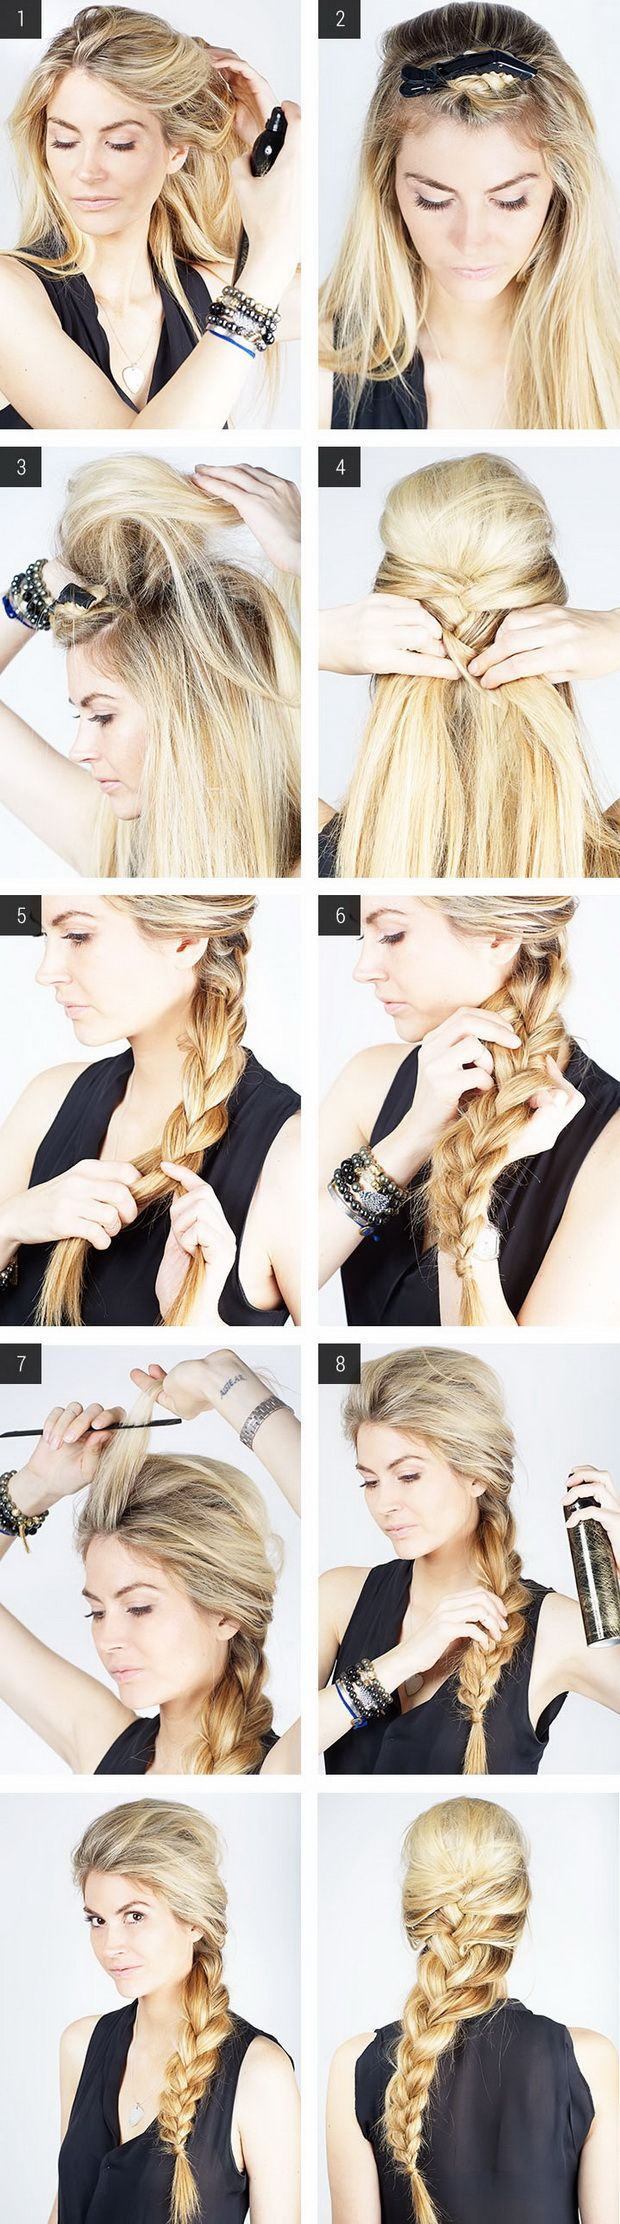 How To Do A Messy French Braid  How To Braid Hair, Braided Hairstyles,